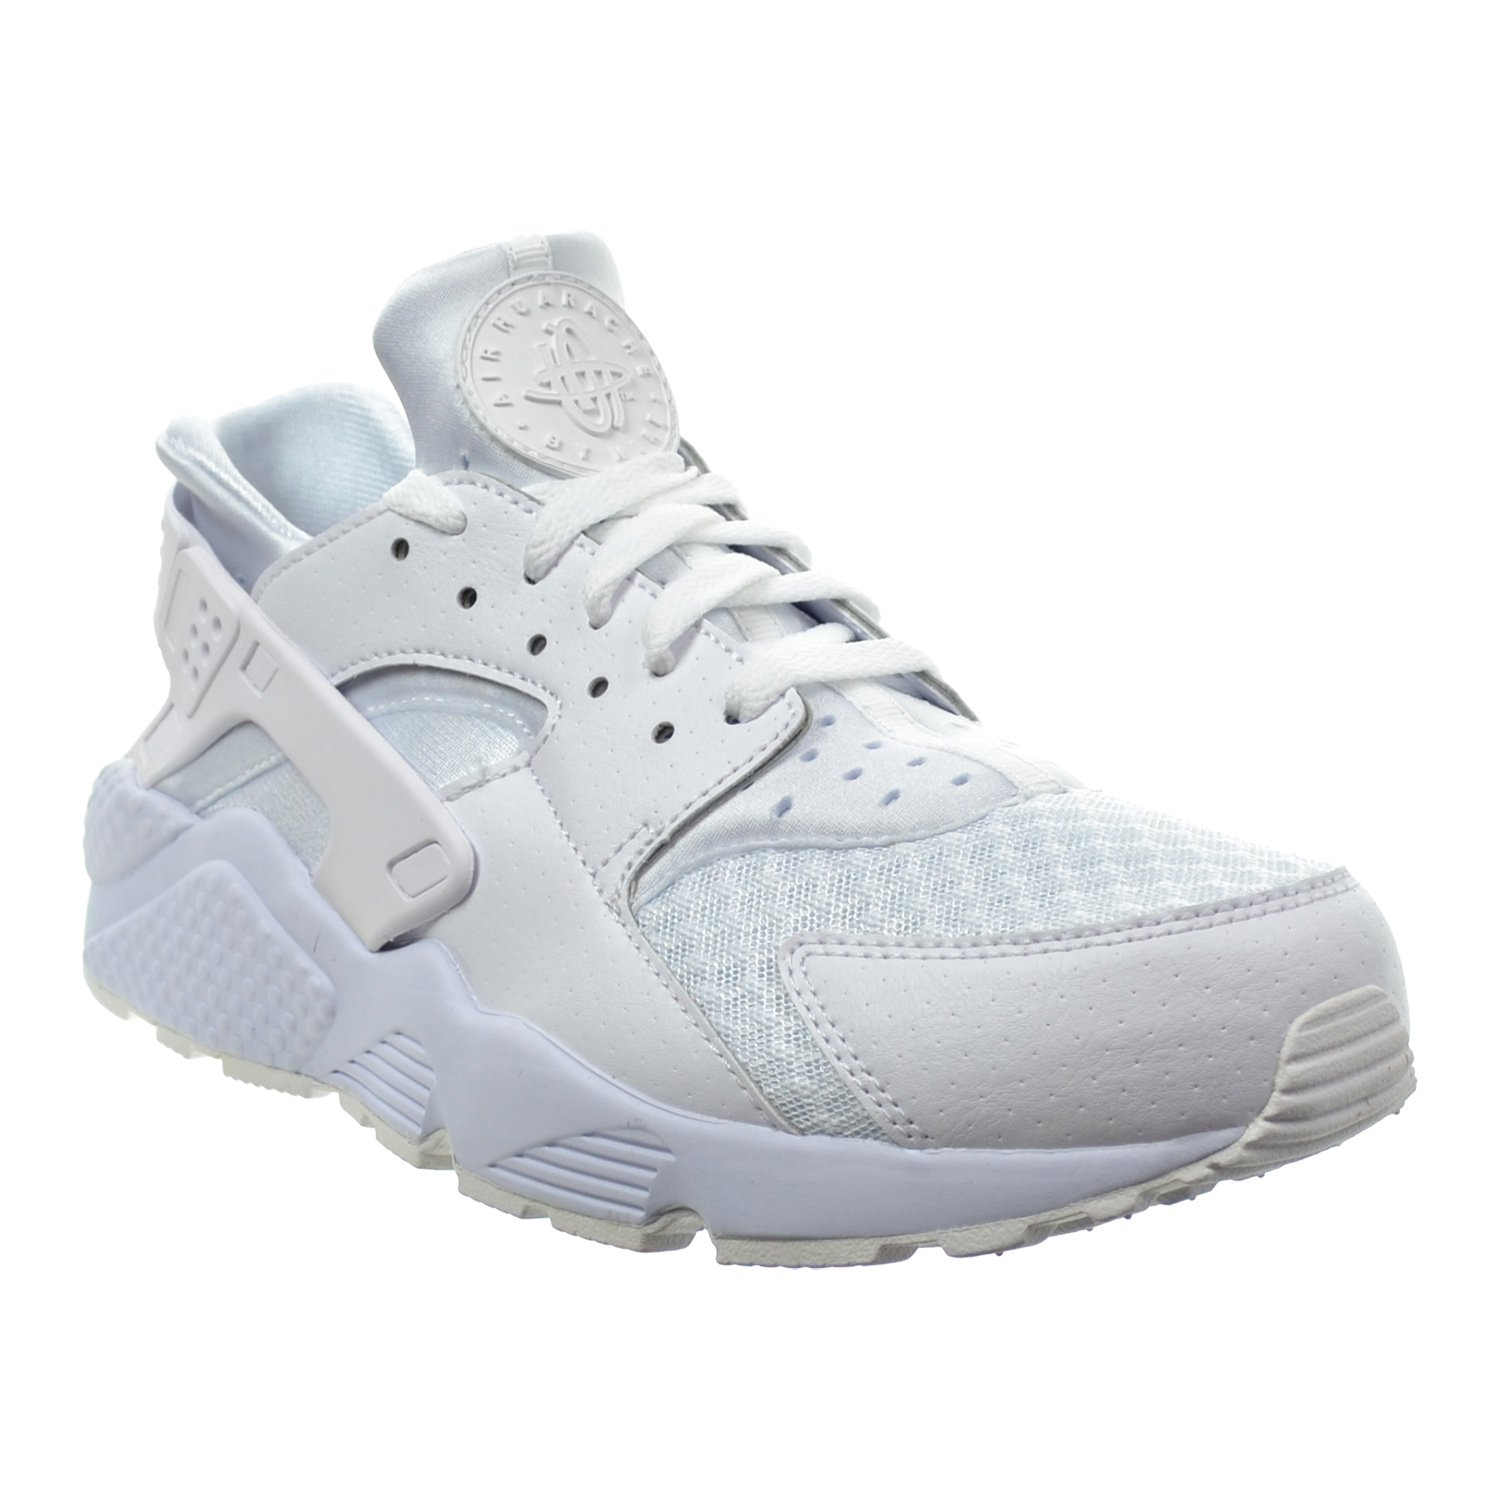 low priced 3b3cc aed1a Amazon.com   NIKE Air Huarache Men s Shoes White Pure Platinum White 318429- 111 (12 D(M) US)   Road Running